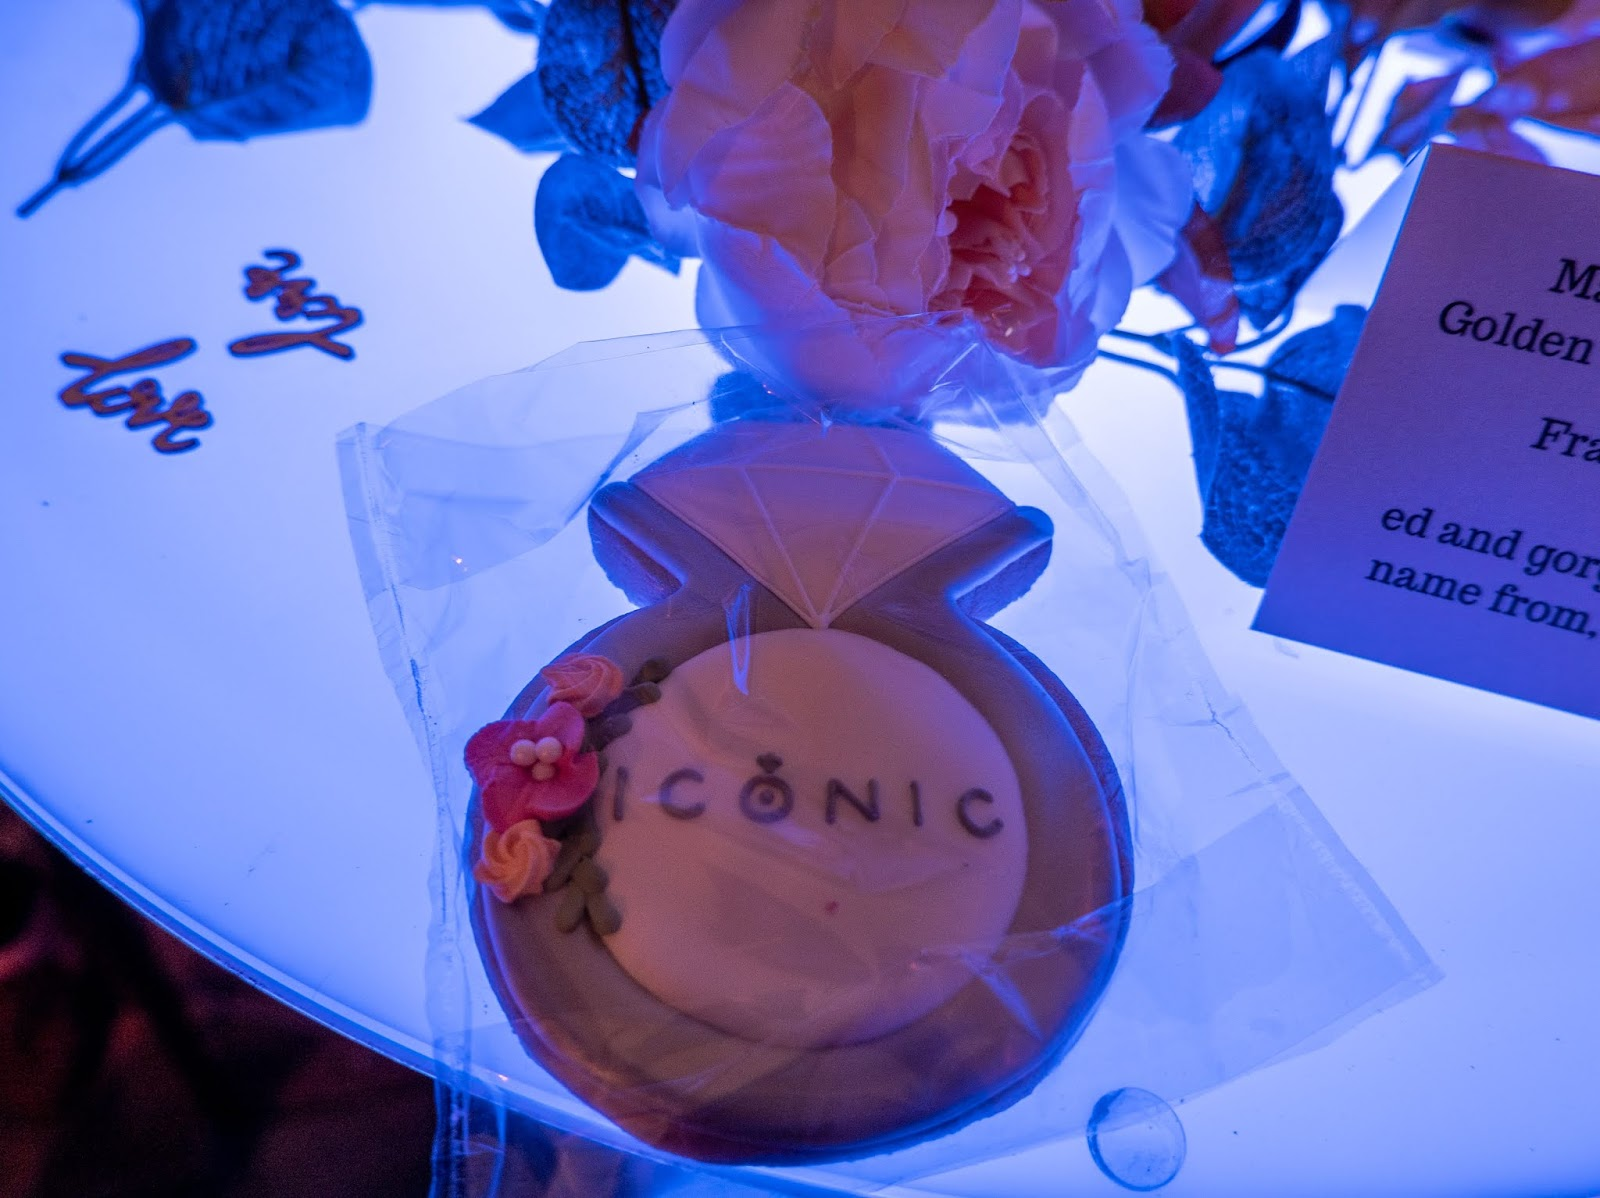 Iconic Jewellery Store cookie at the Wedding Collection launch in Canterbury, Kent